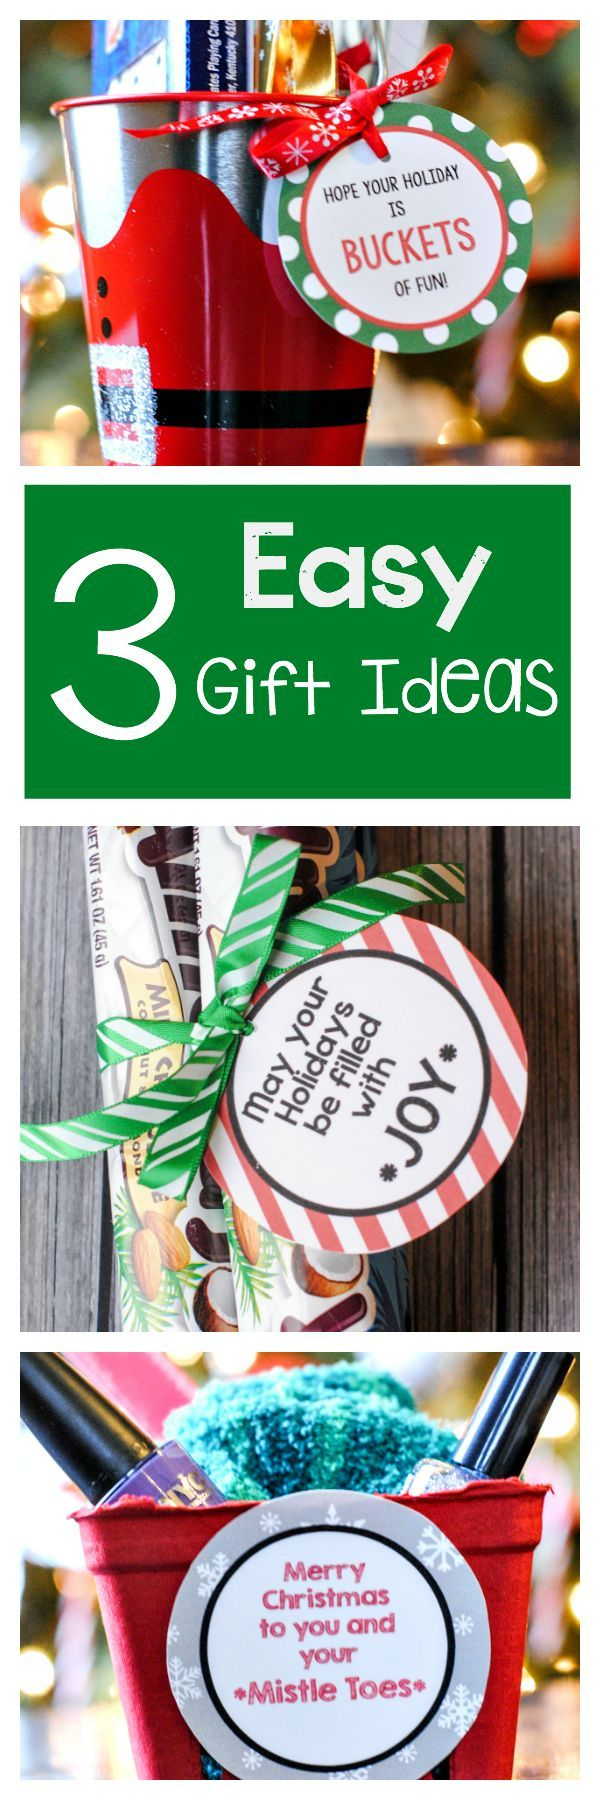 Thank you gift ideas for coworkers homemade